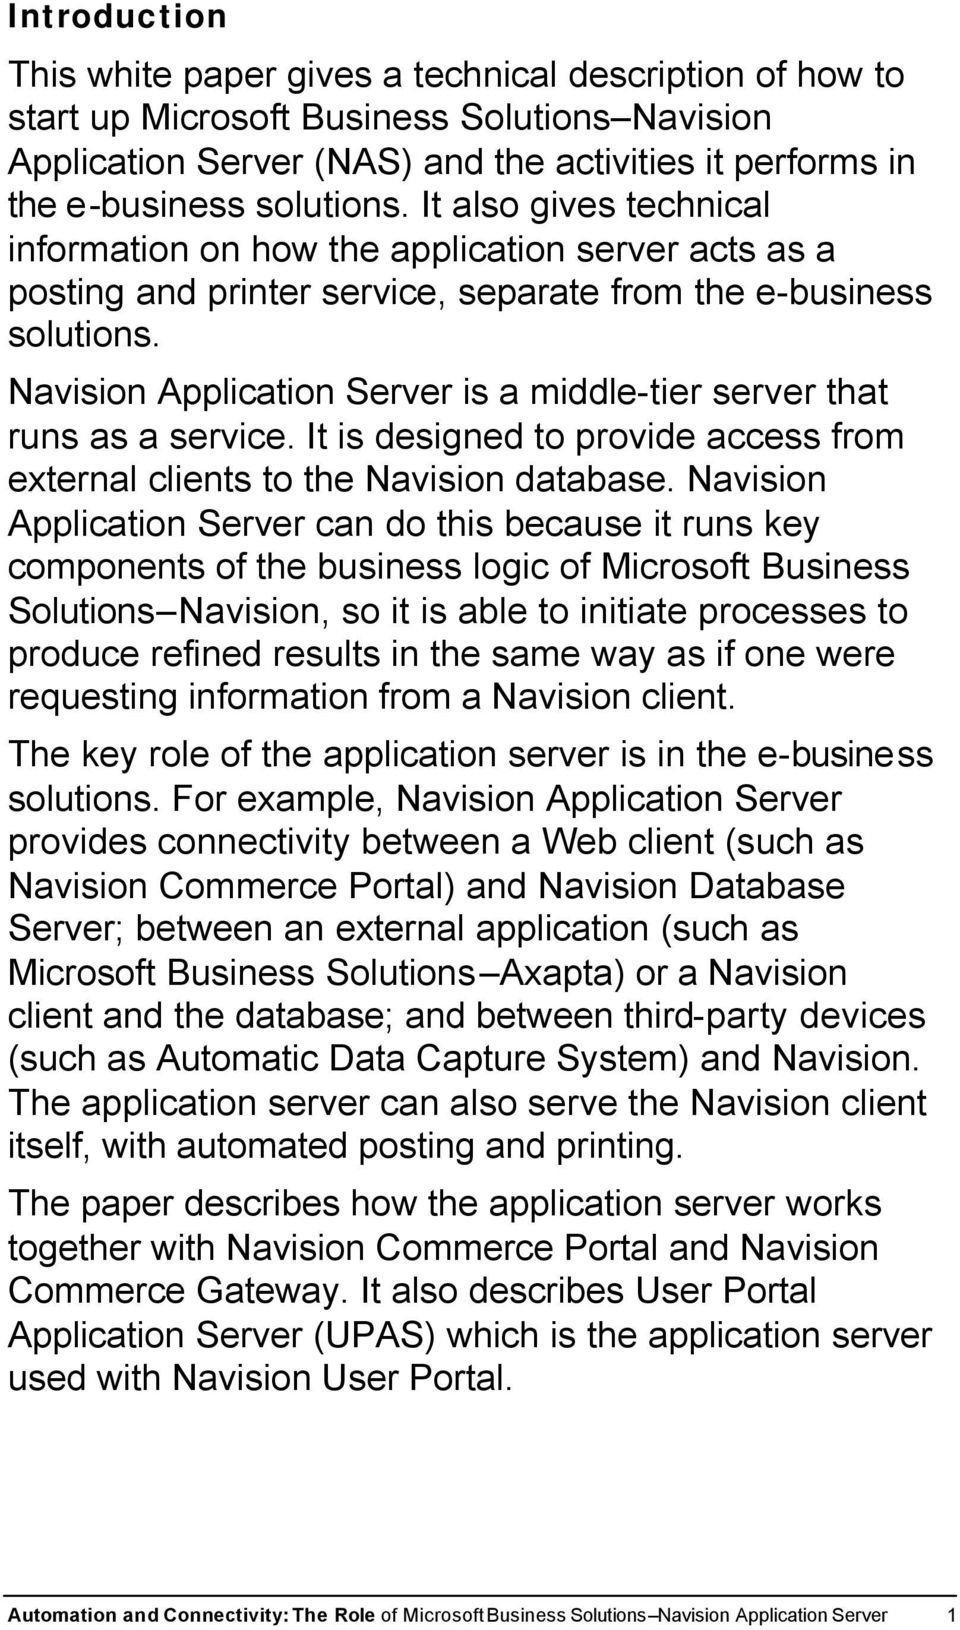 Navision Application Server is a middle-tier server that runs as a service. It is designed to provide access from external clients to the Navision database.